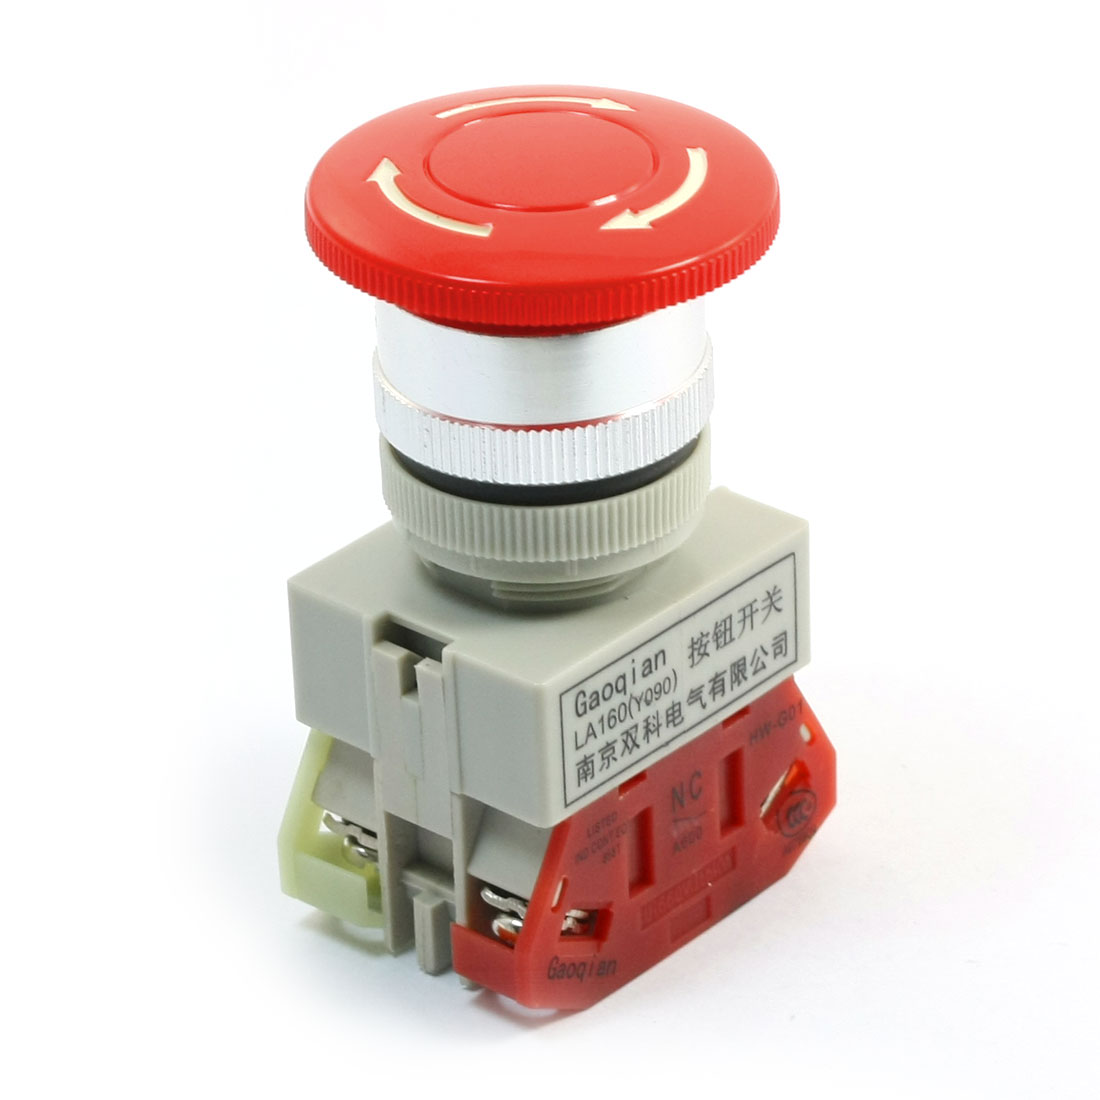 600V 10A DPST Locking Red Mushroom Head Emergency Stop Push Button Switch